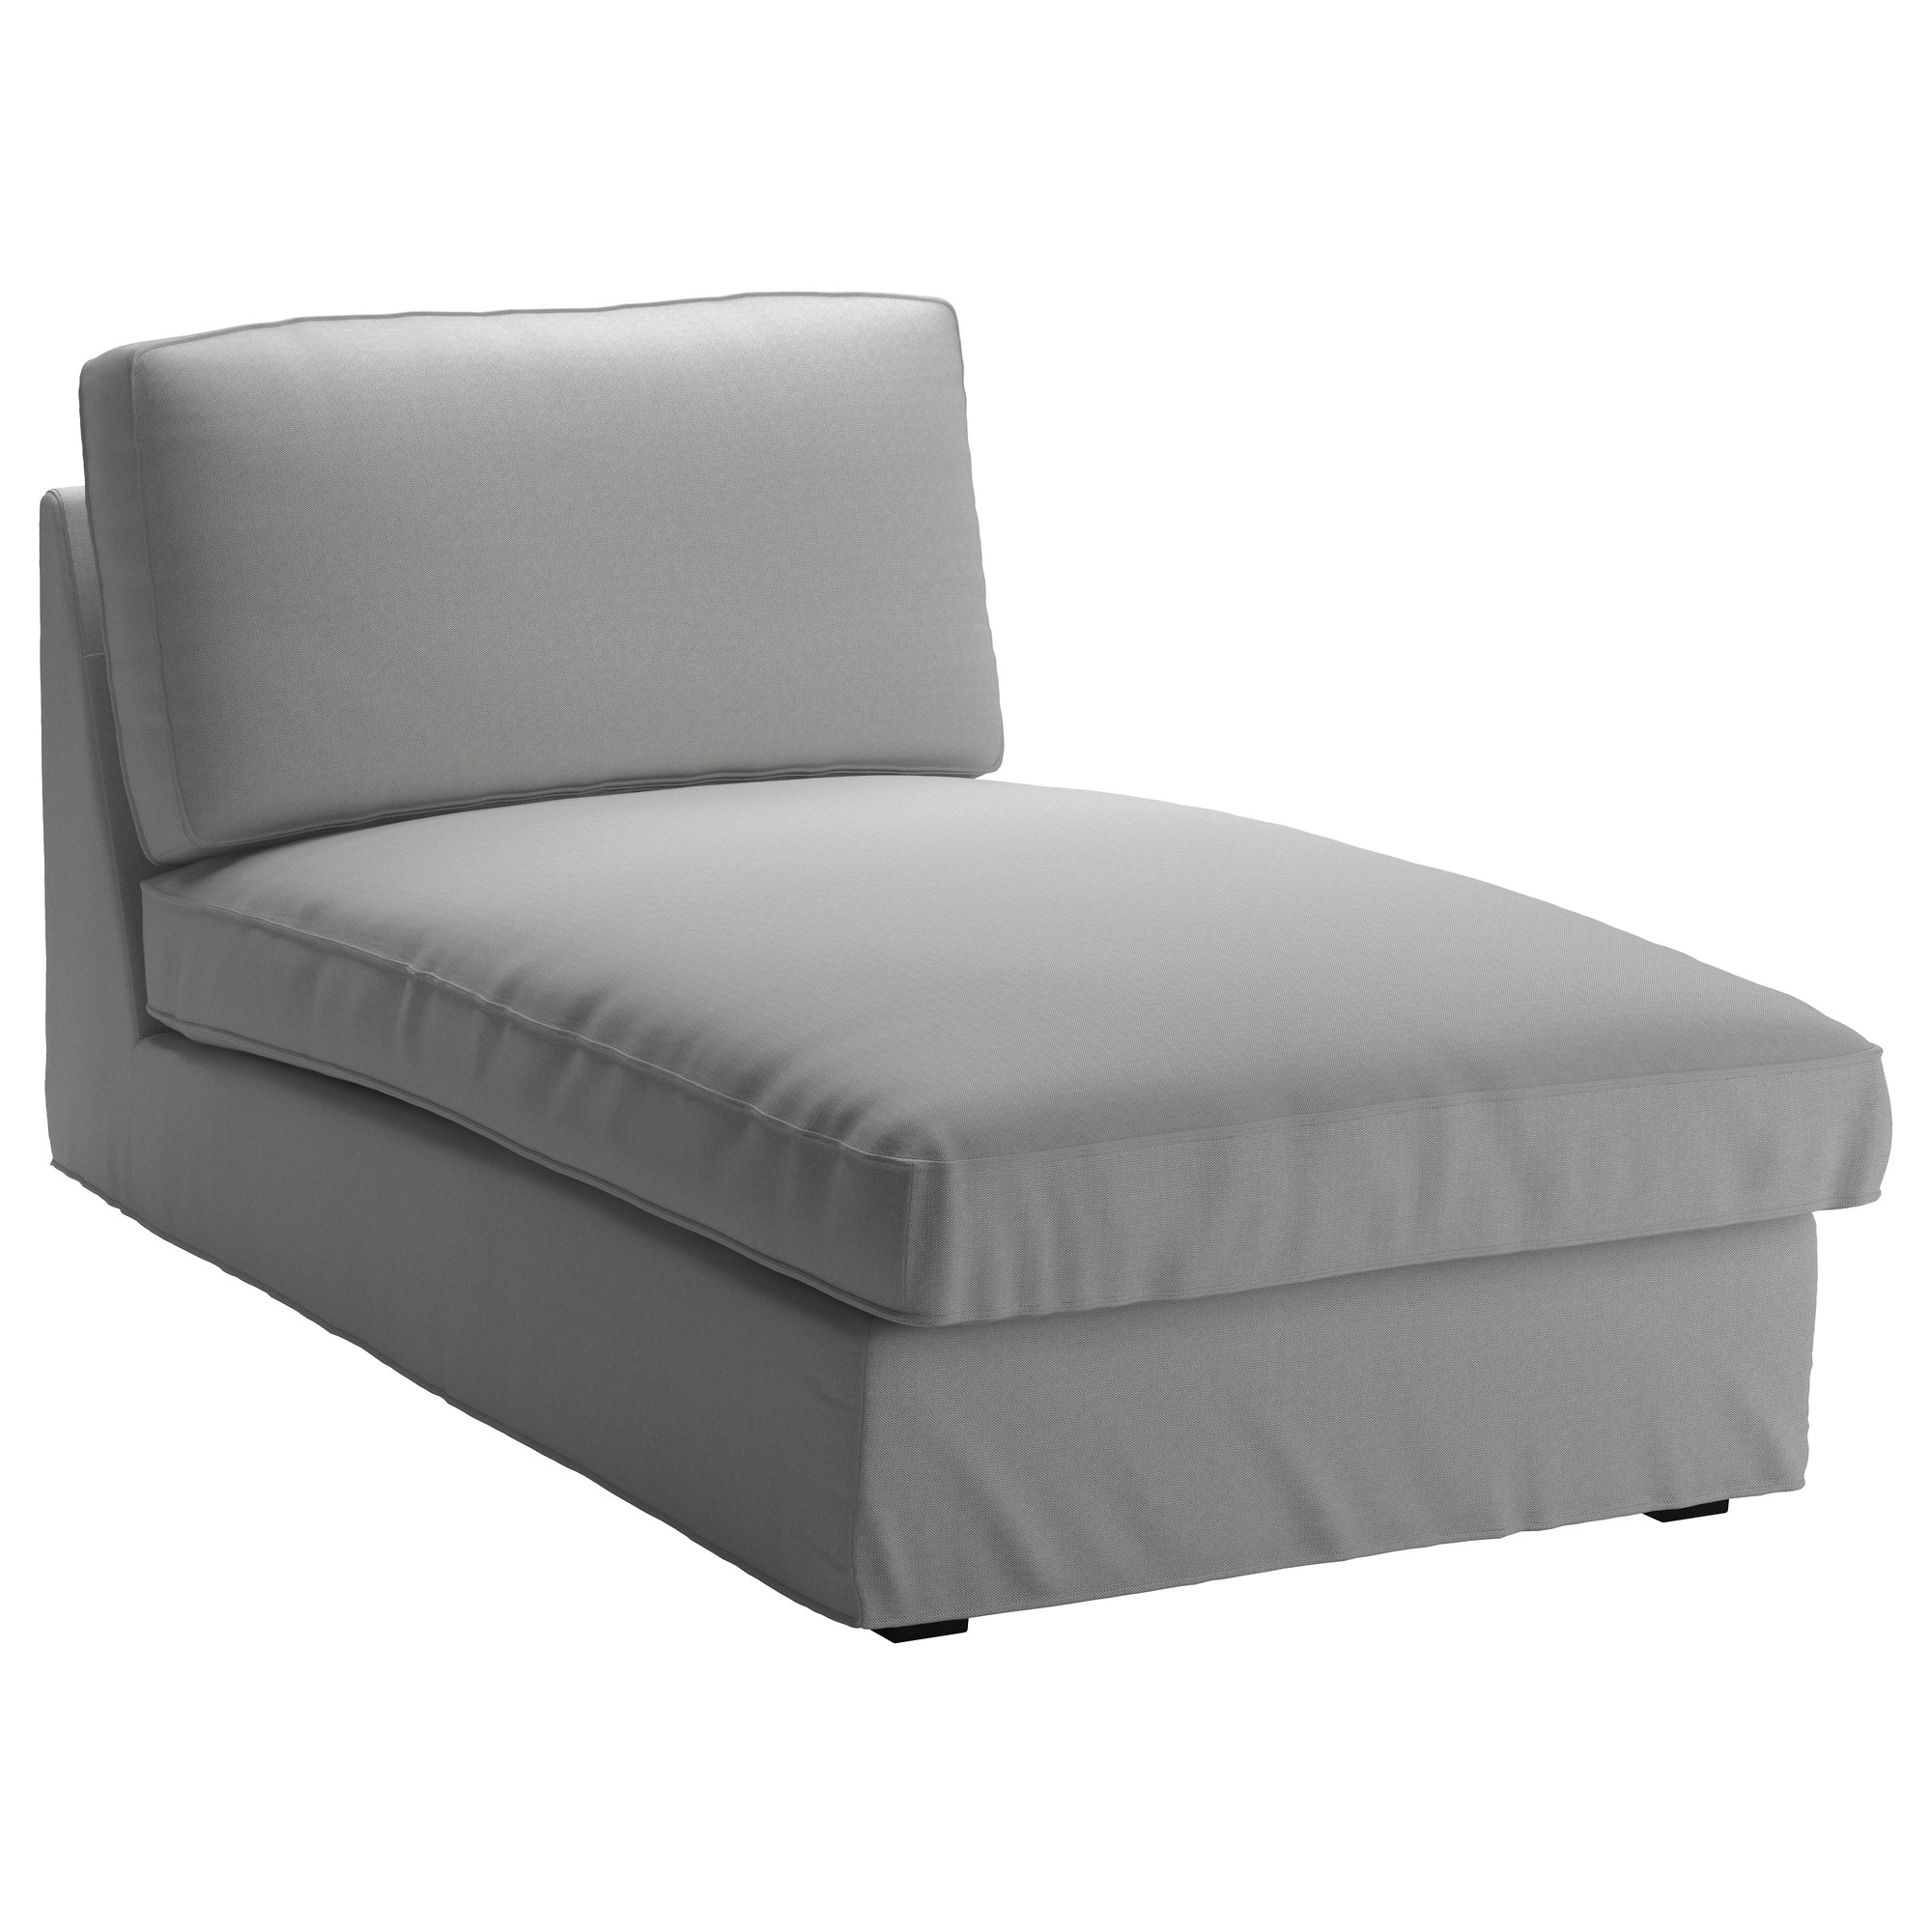 Preferred Ikea Chaise Lounge Chairs In Armchairs Chaises Rockers More Ikea Lounge Chair Cushions  (View 11 of 15)